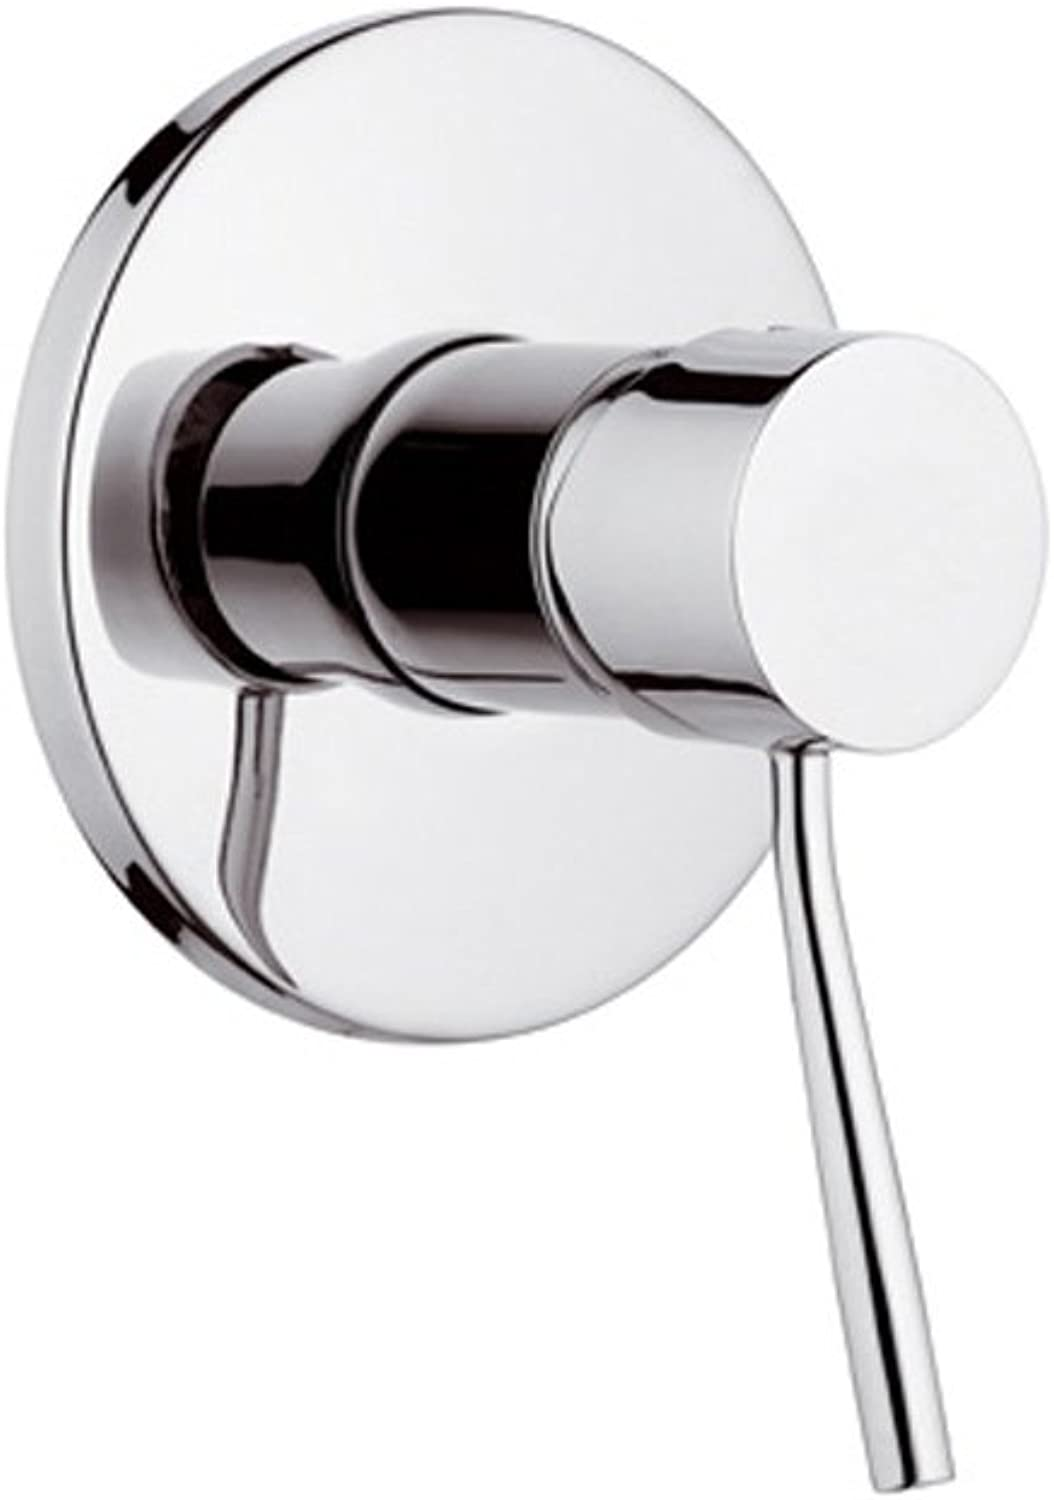 Idro Bric 1?Built-in Shower Mixer Single-Lever Mixer, Chrome